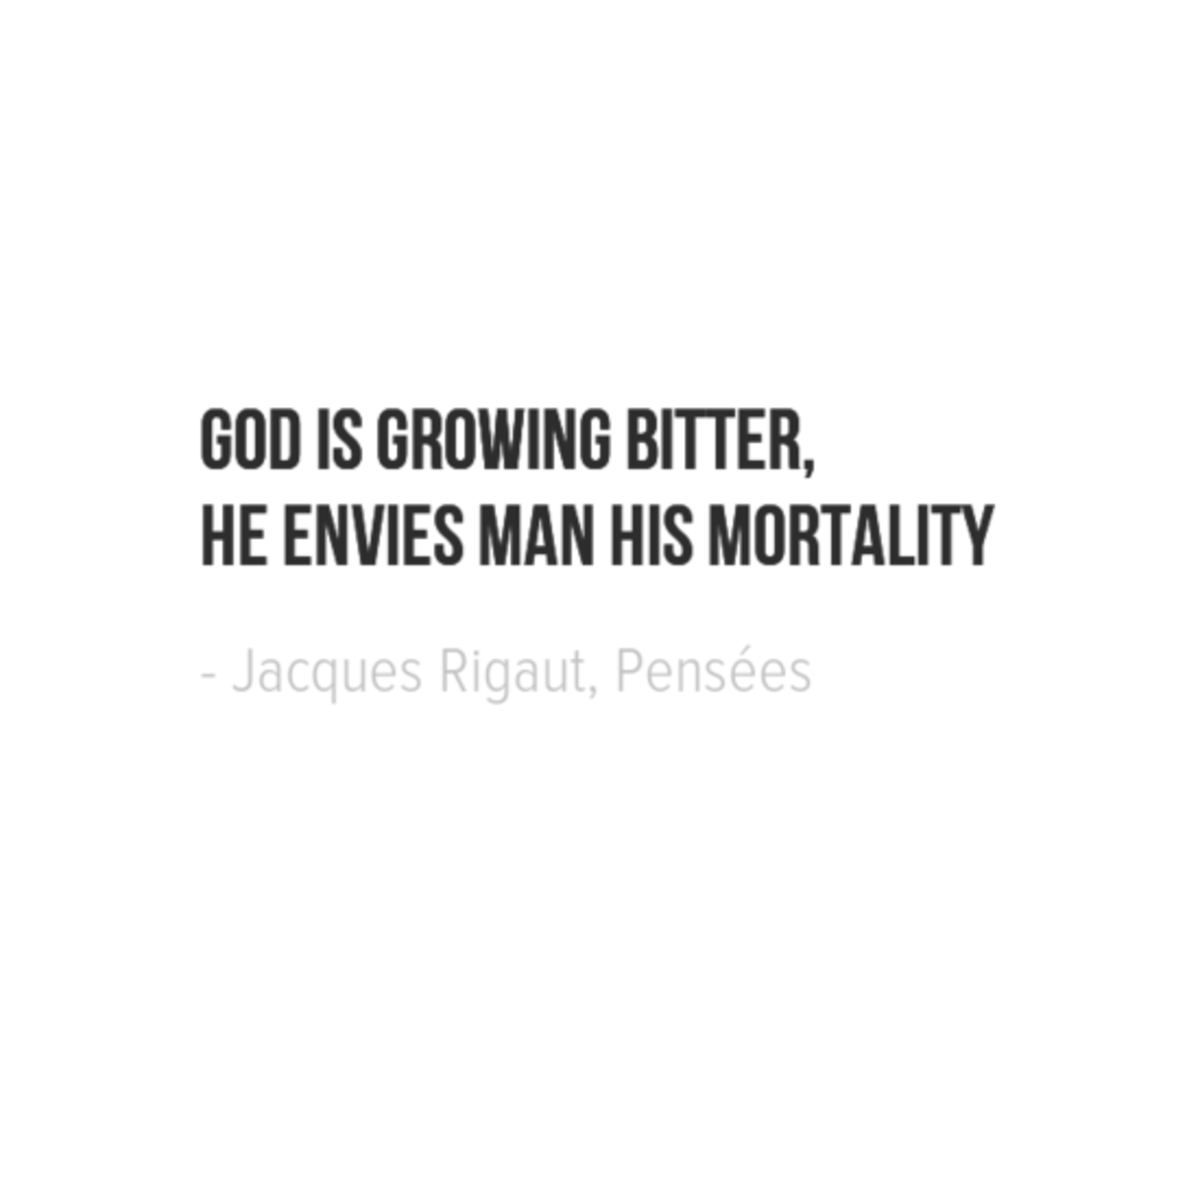 God is growing bitter, He envies man his mortality. - Jacques Rigaut, Pensées